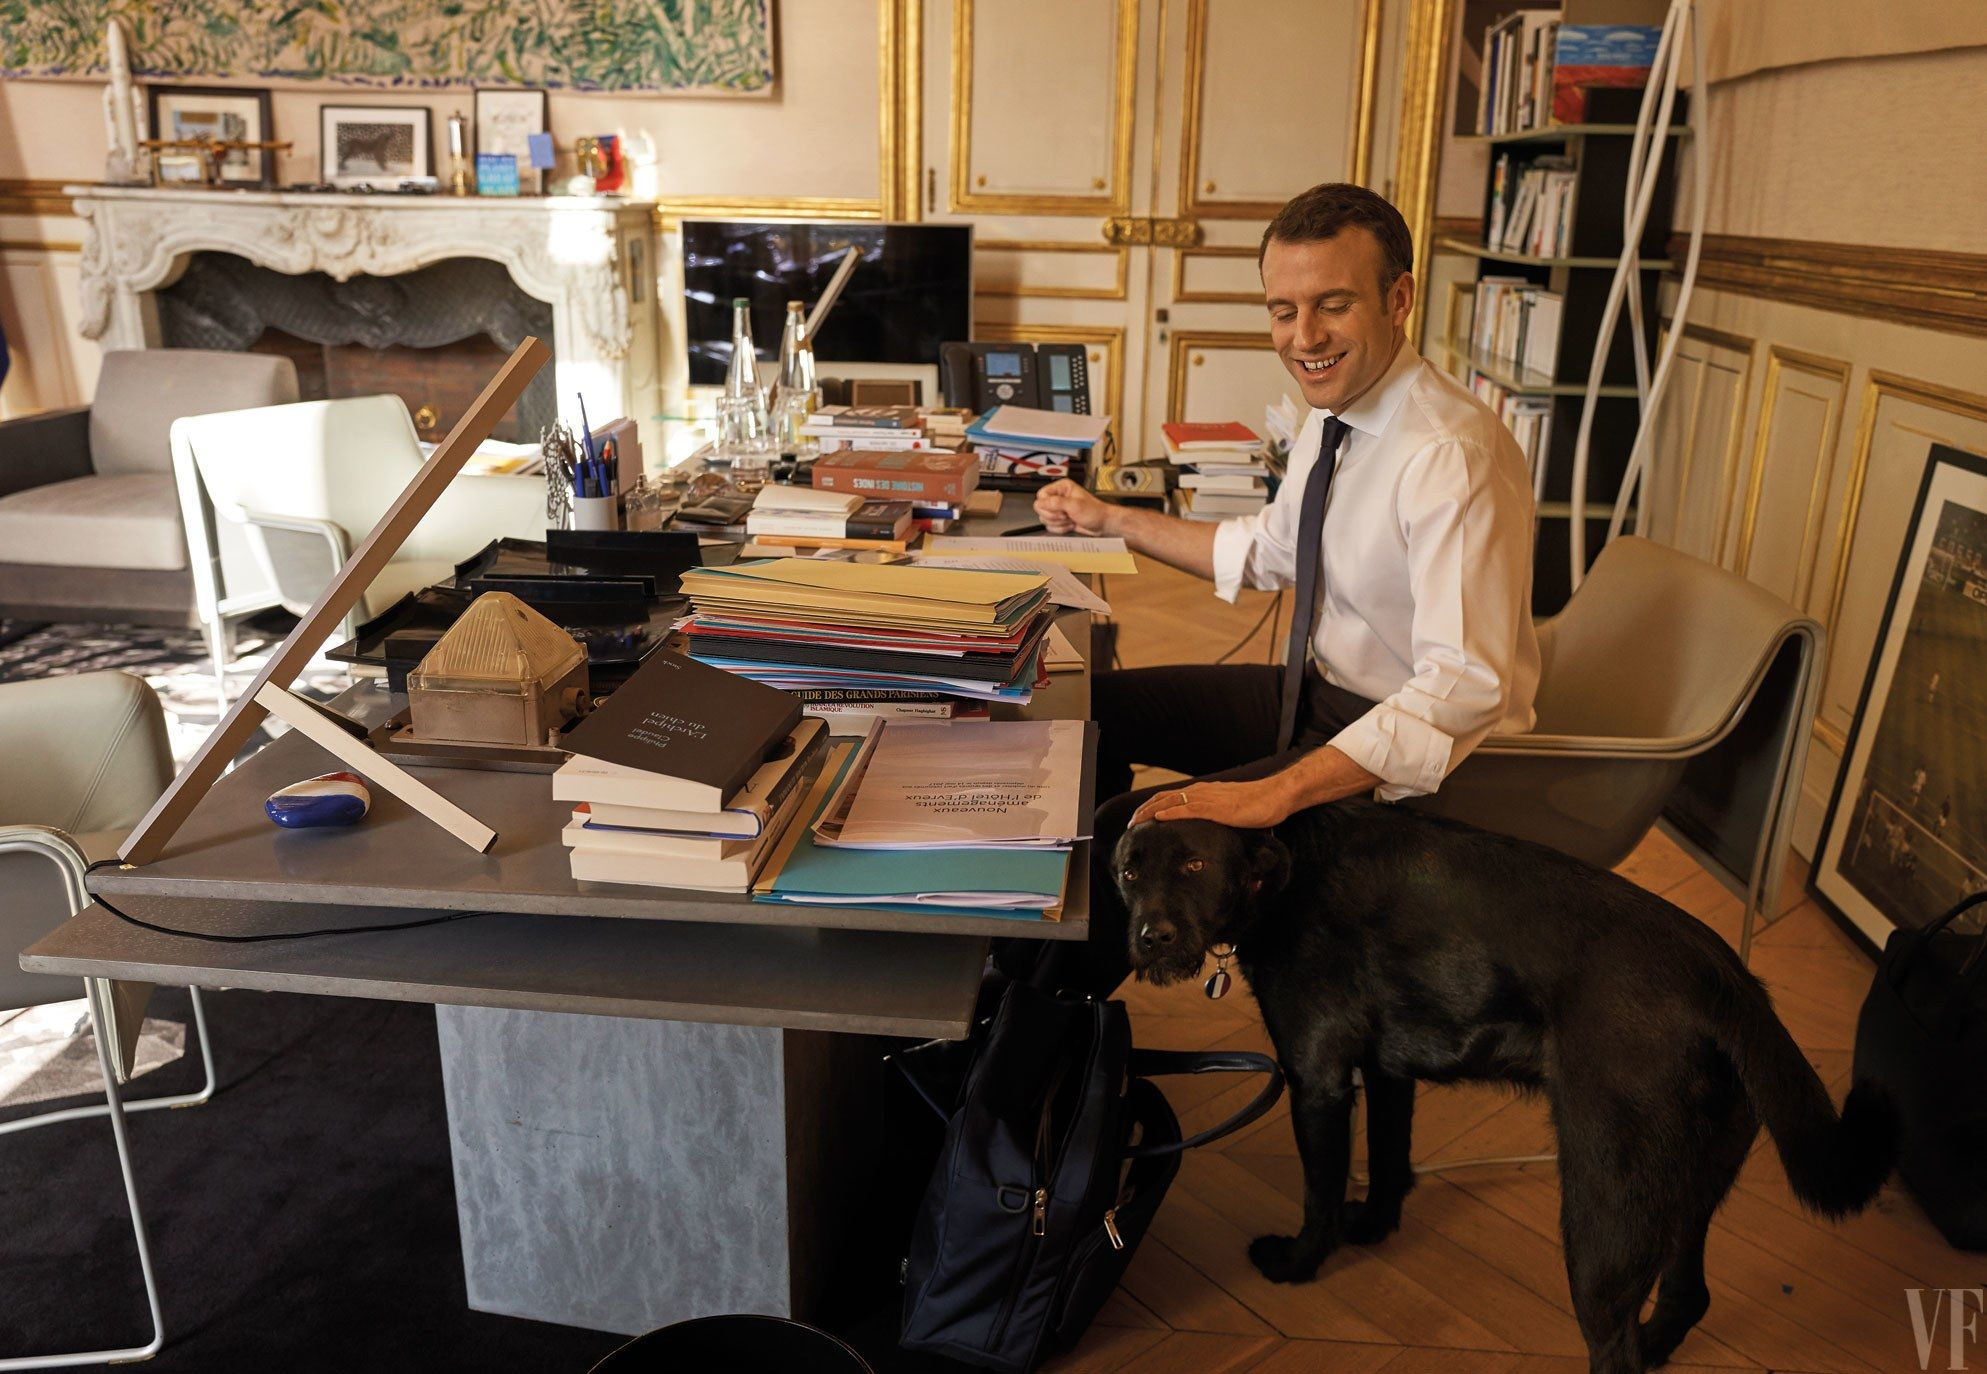 French president emmanuel macron at work in his Élysée office with